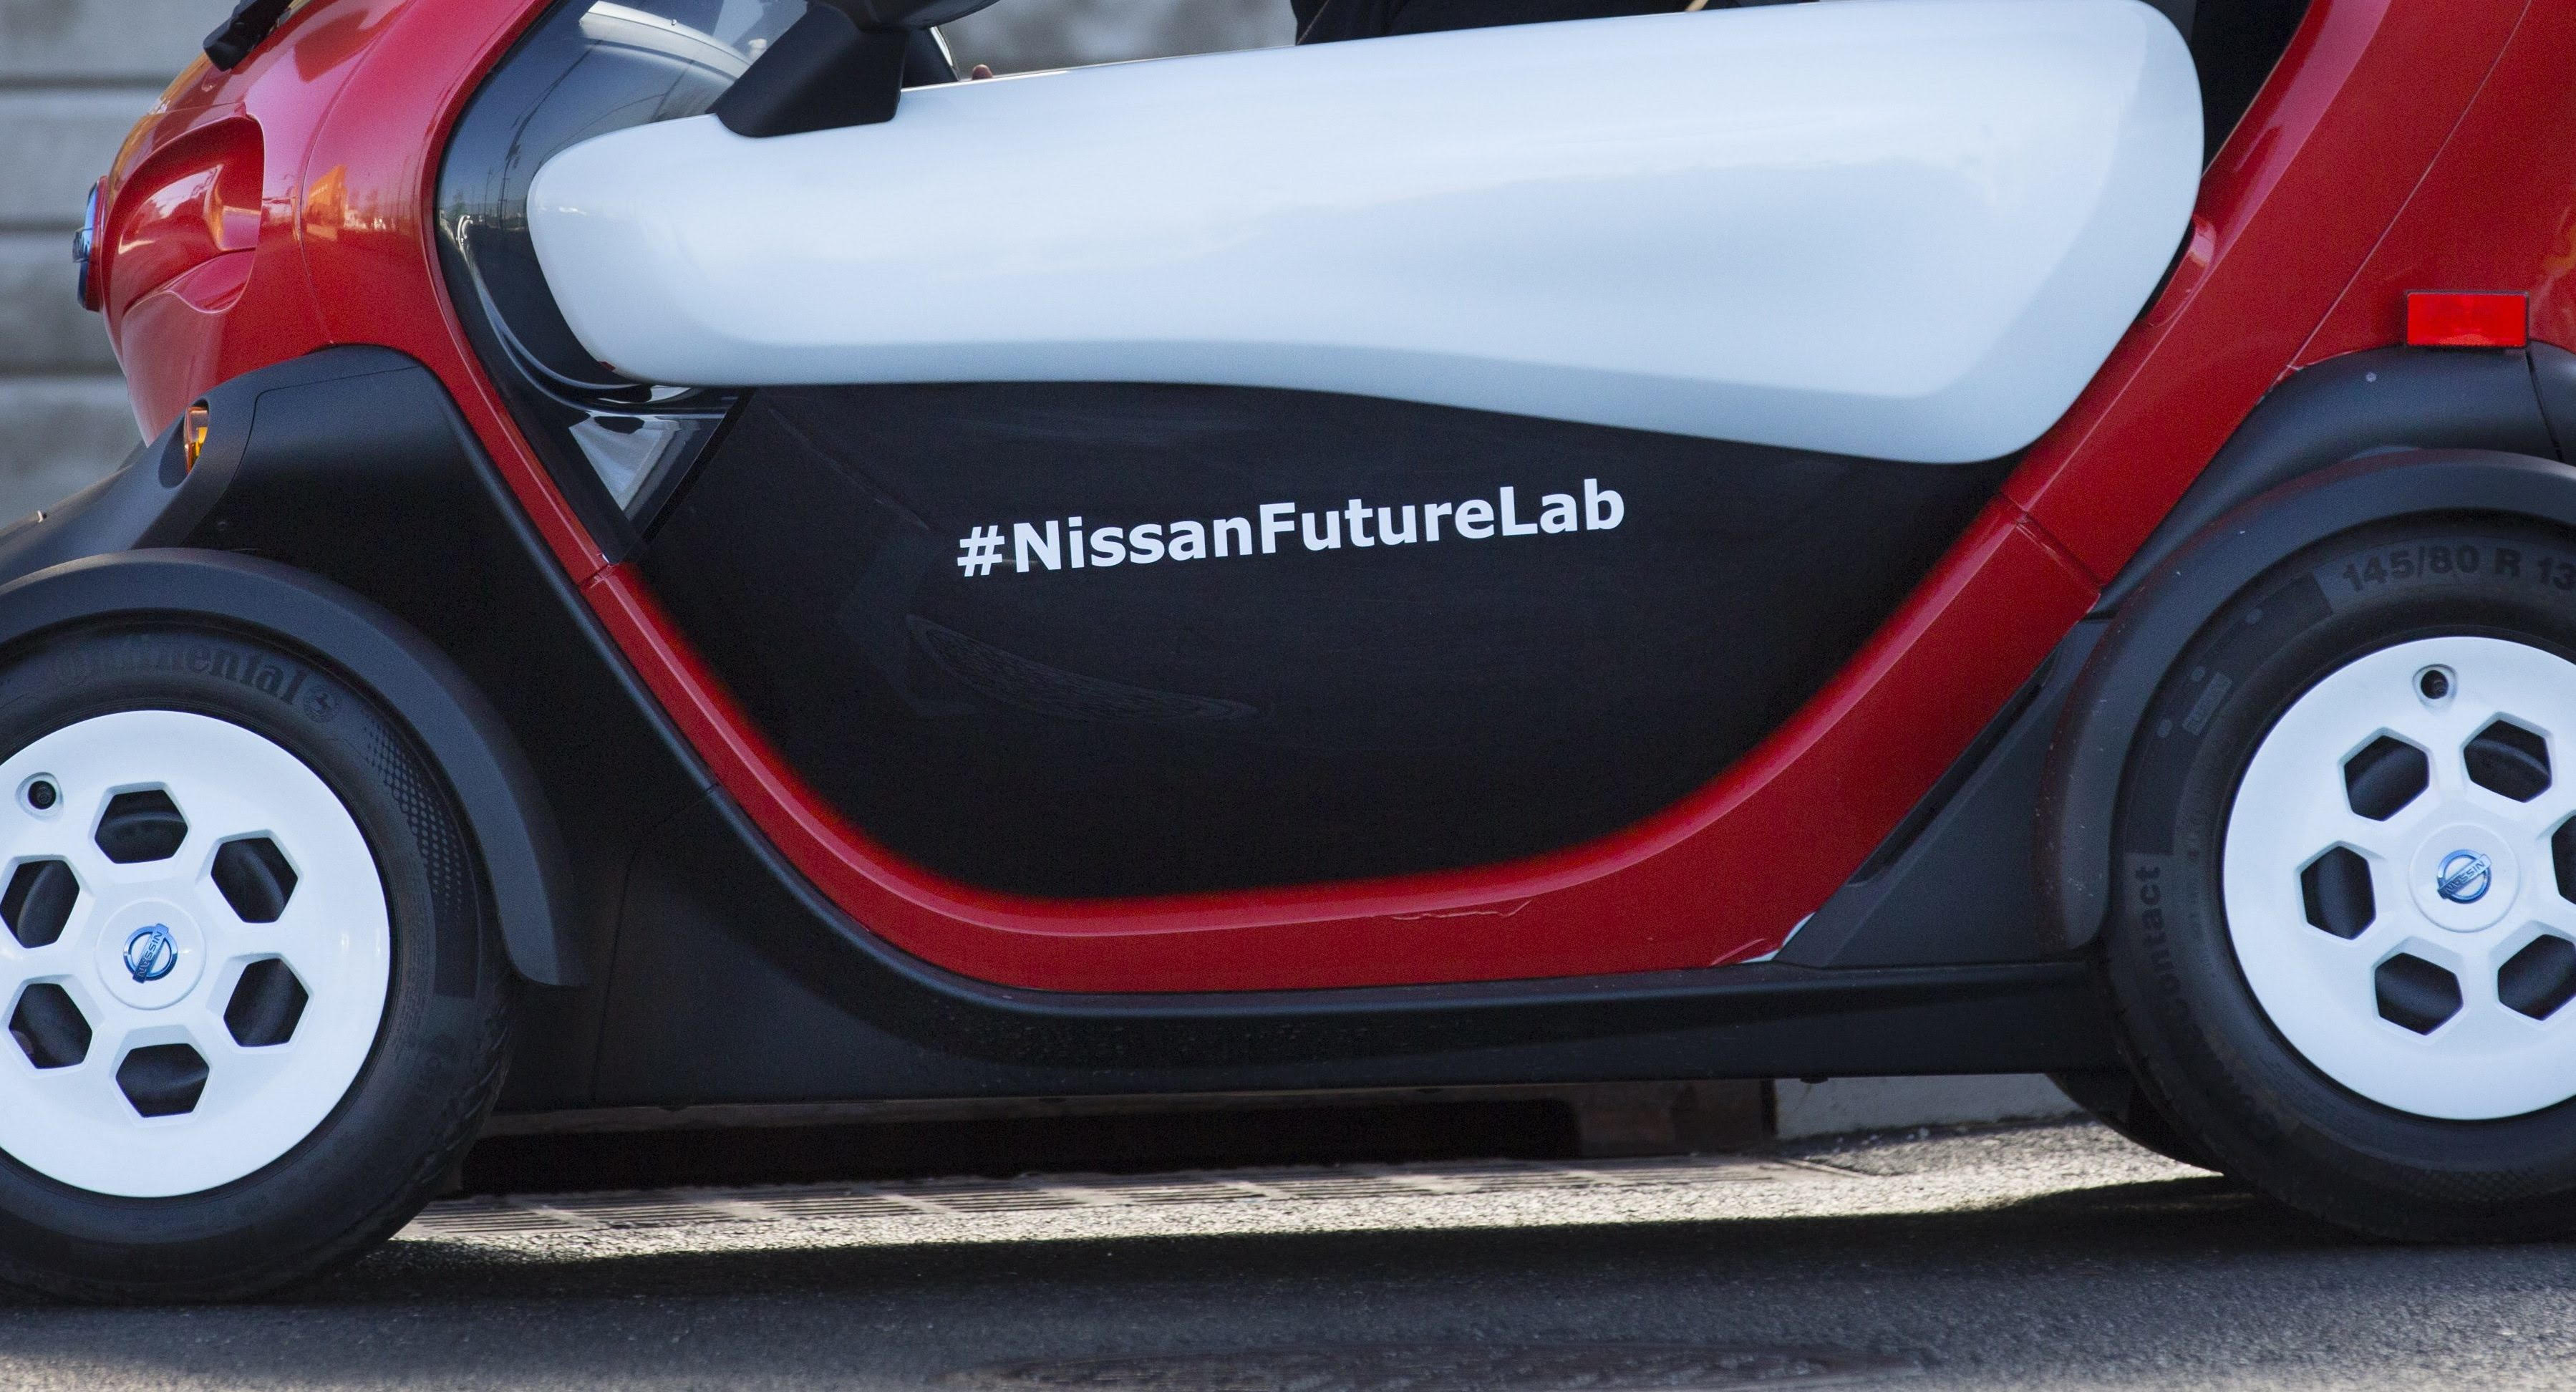 Nissan Future Lab experimenting with car sharing a